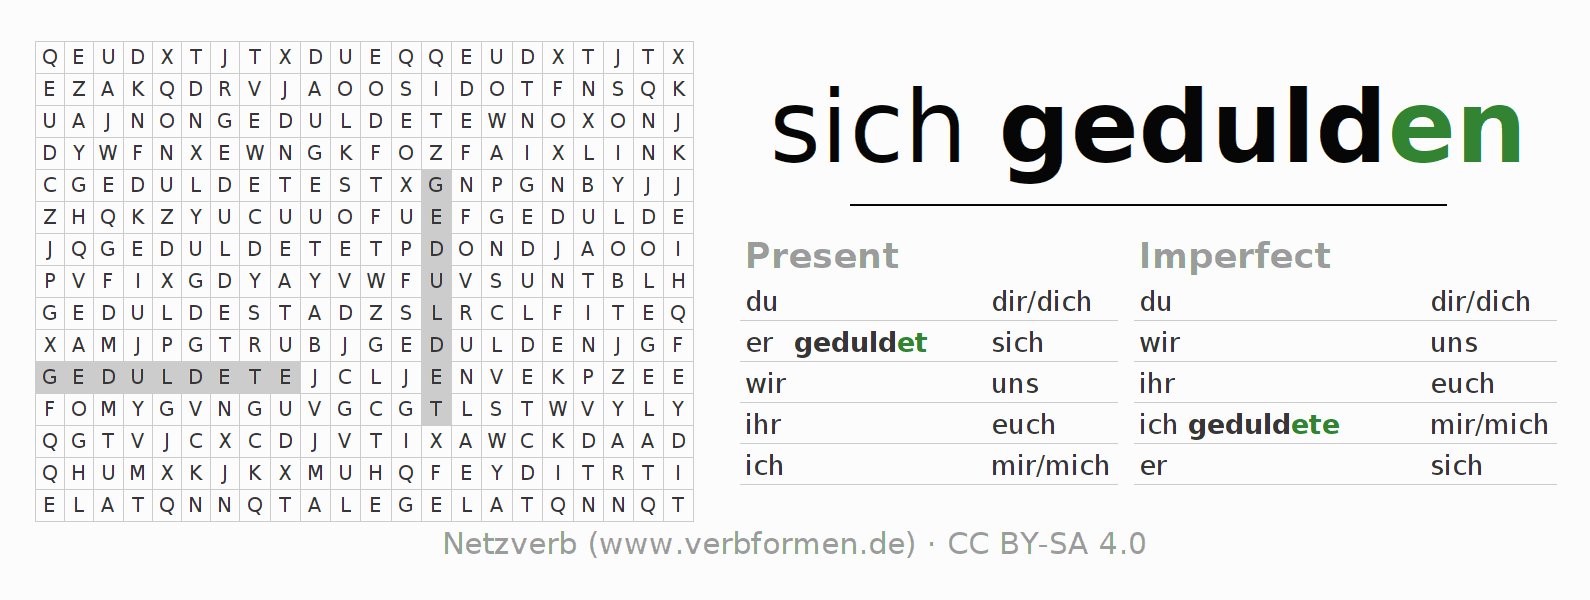 Word search puzzle for the conjugation of the verb sich gedulden